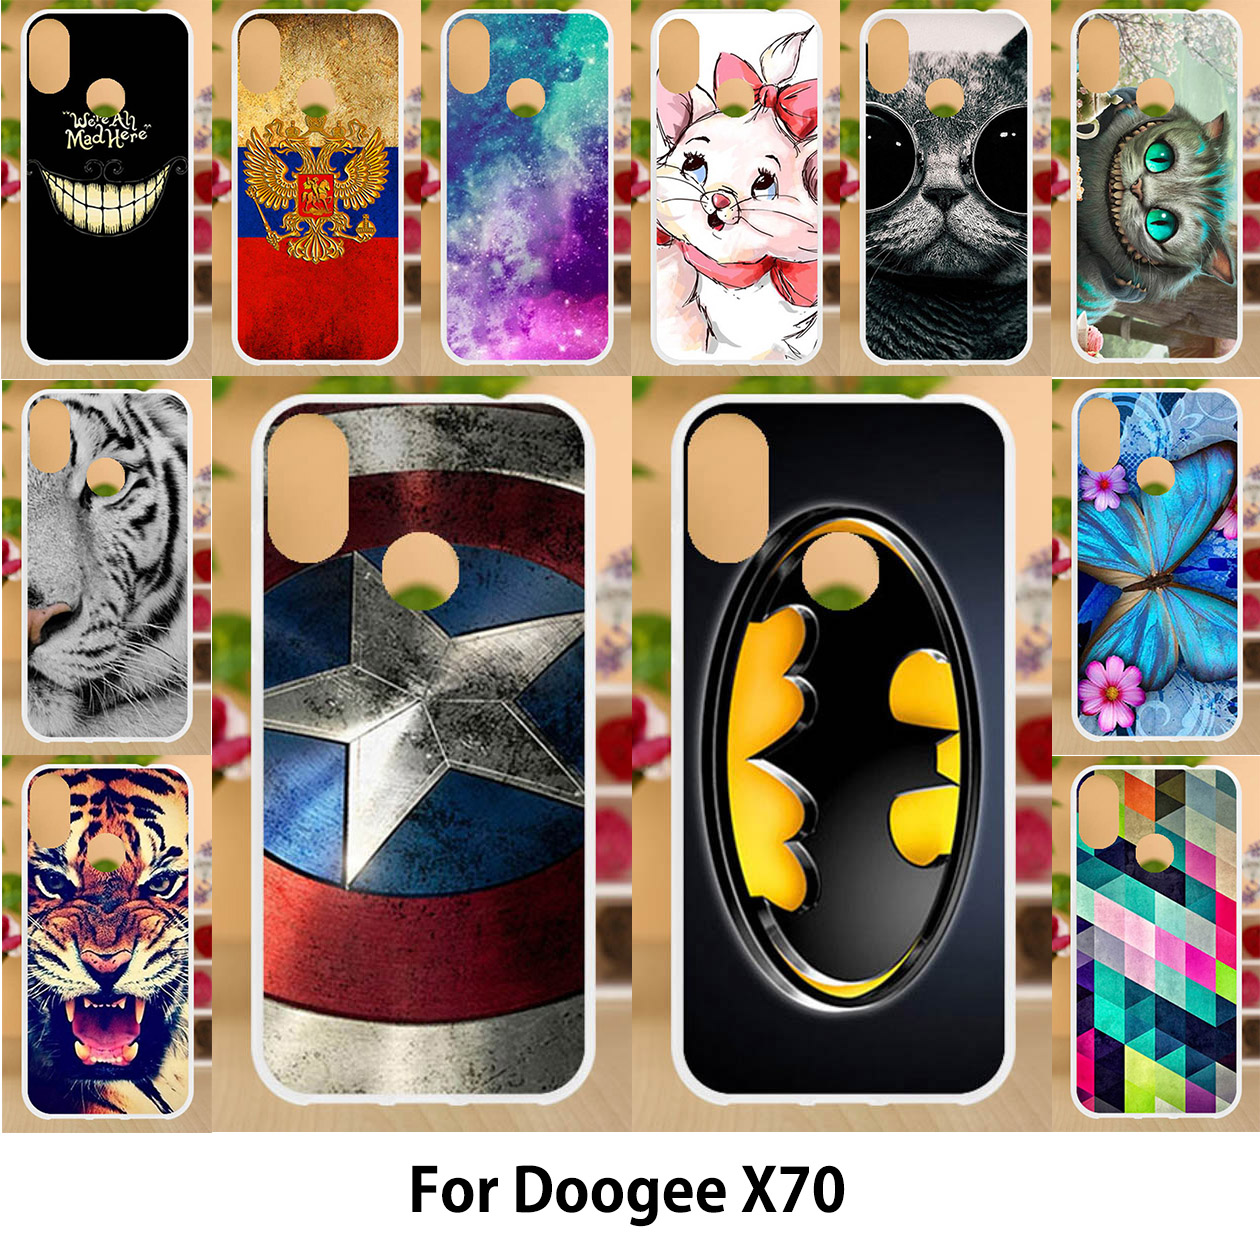 Anunob <font><b>Case</b></font> For Coque <font><b>Doogee</b></font> <font><b>X70</b></font> <font><b>Cases</b></font> TPU Soft <font><b>Silicone</b></font> 5.5 inch Cover For <font><b>Doogee</b></font> <font><b>X70</b></font> Covers Painting Animal Shell Back Bags image